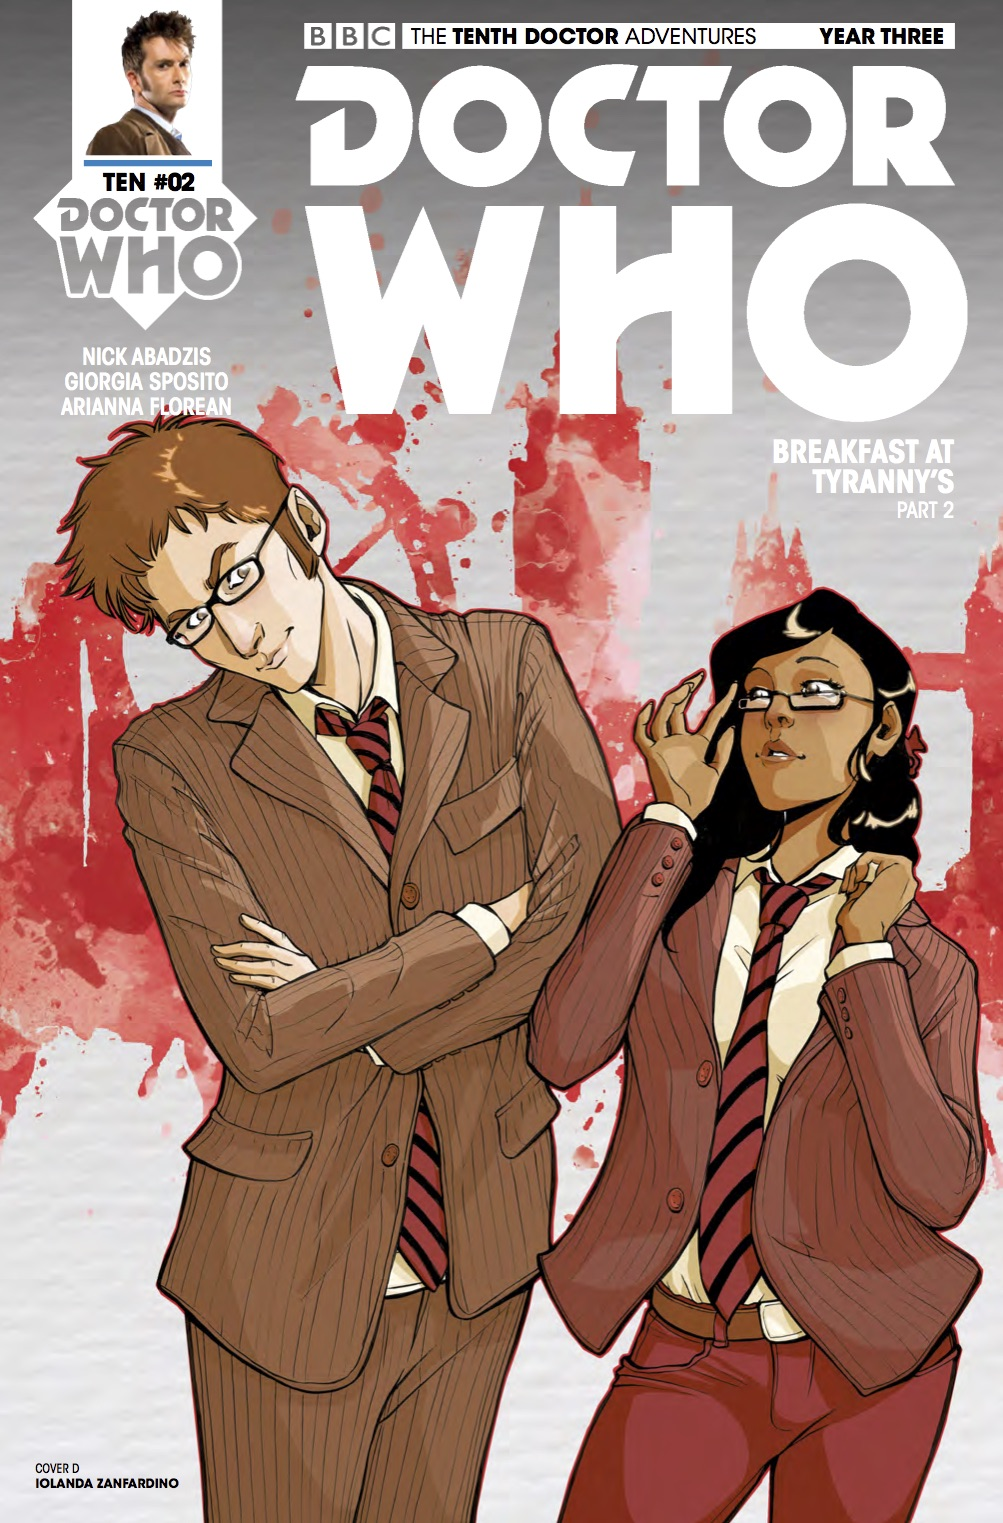 THE_TENTH_DOCTOR_3_2_Cover_D (Credit: Titan / Iolanda Zanfardino)